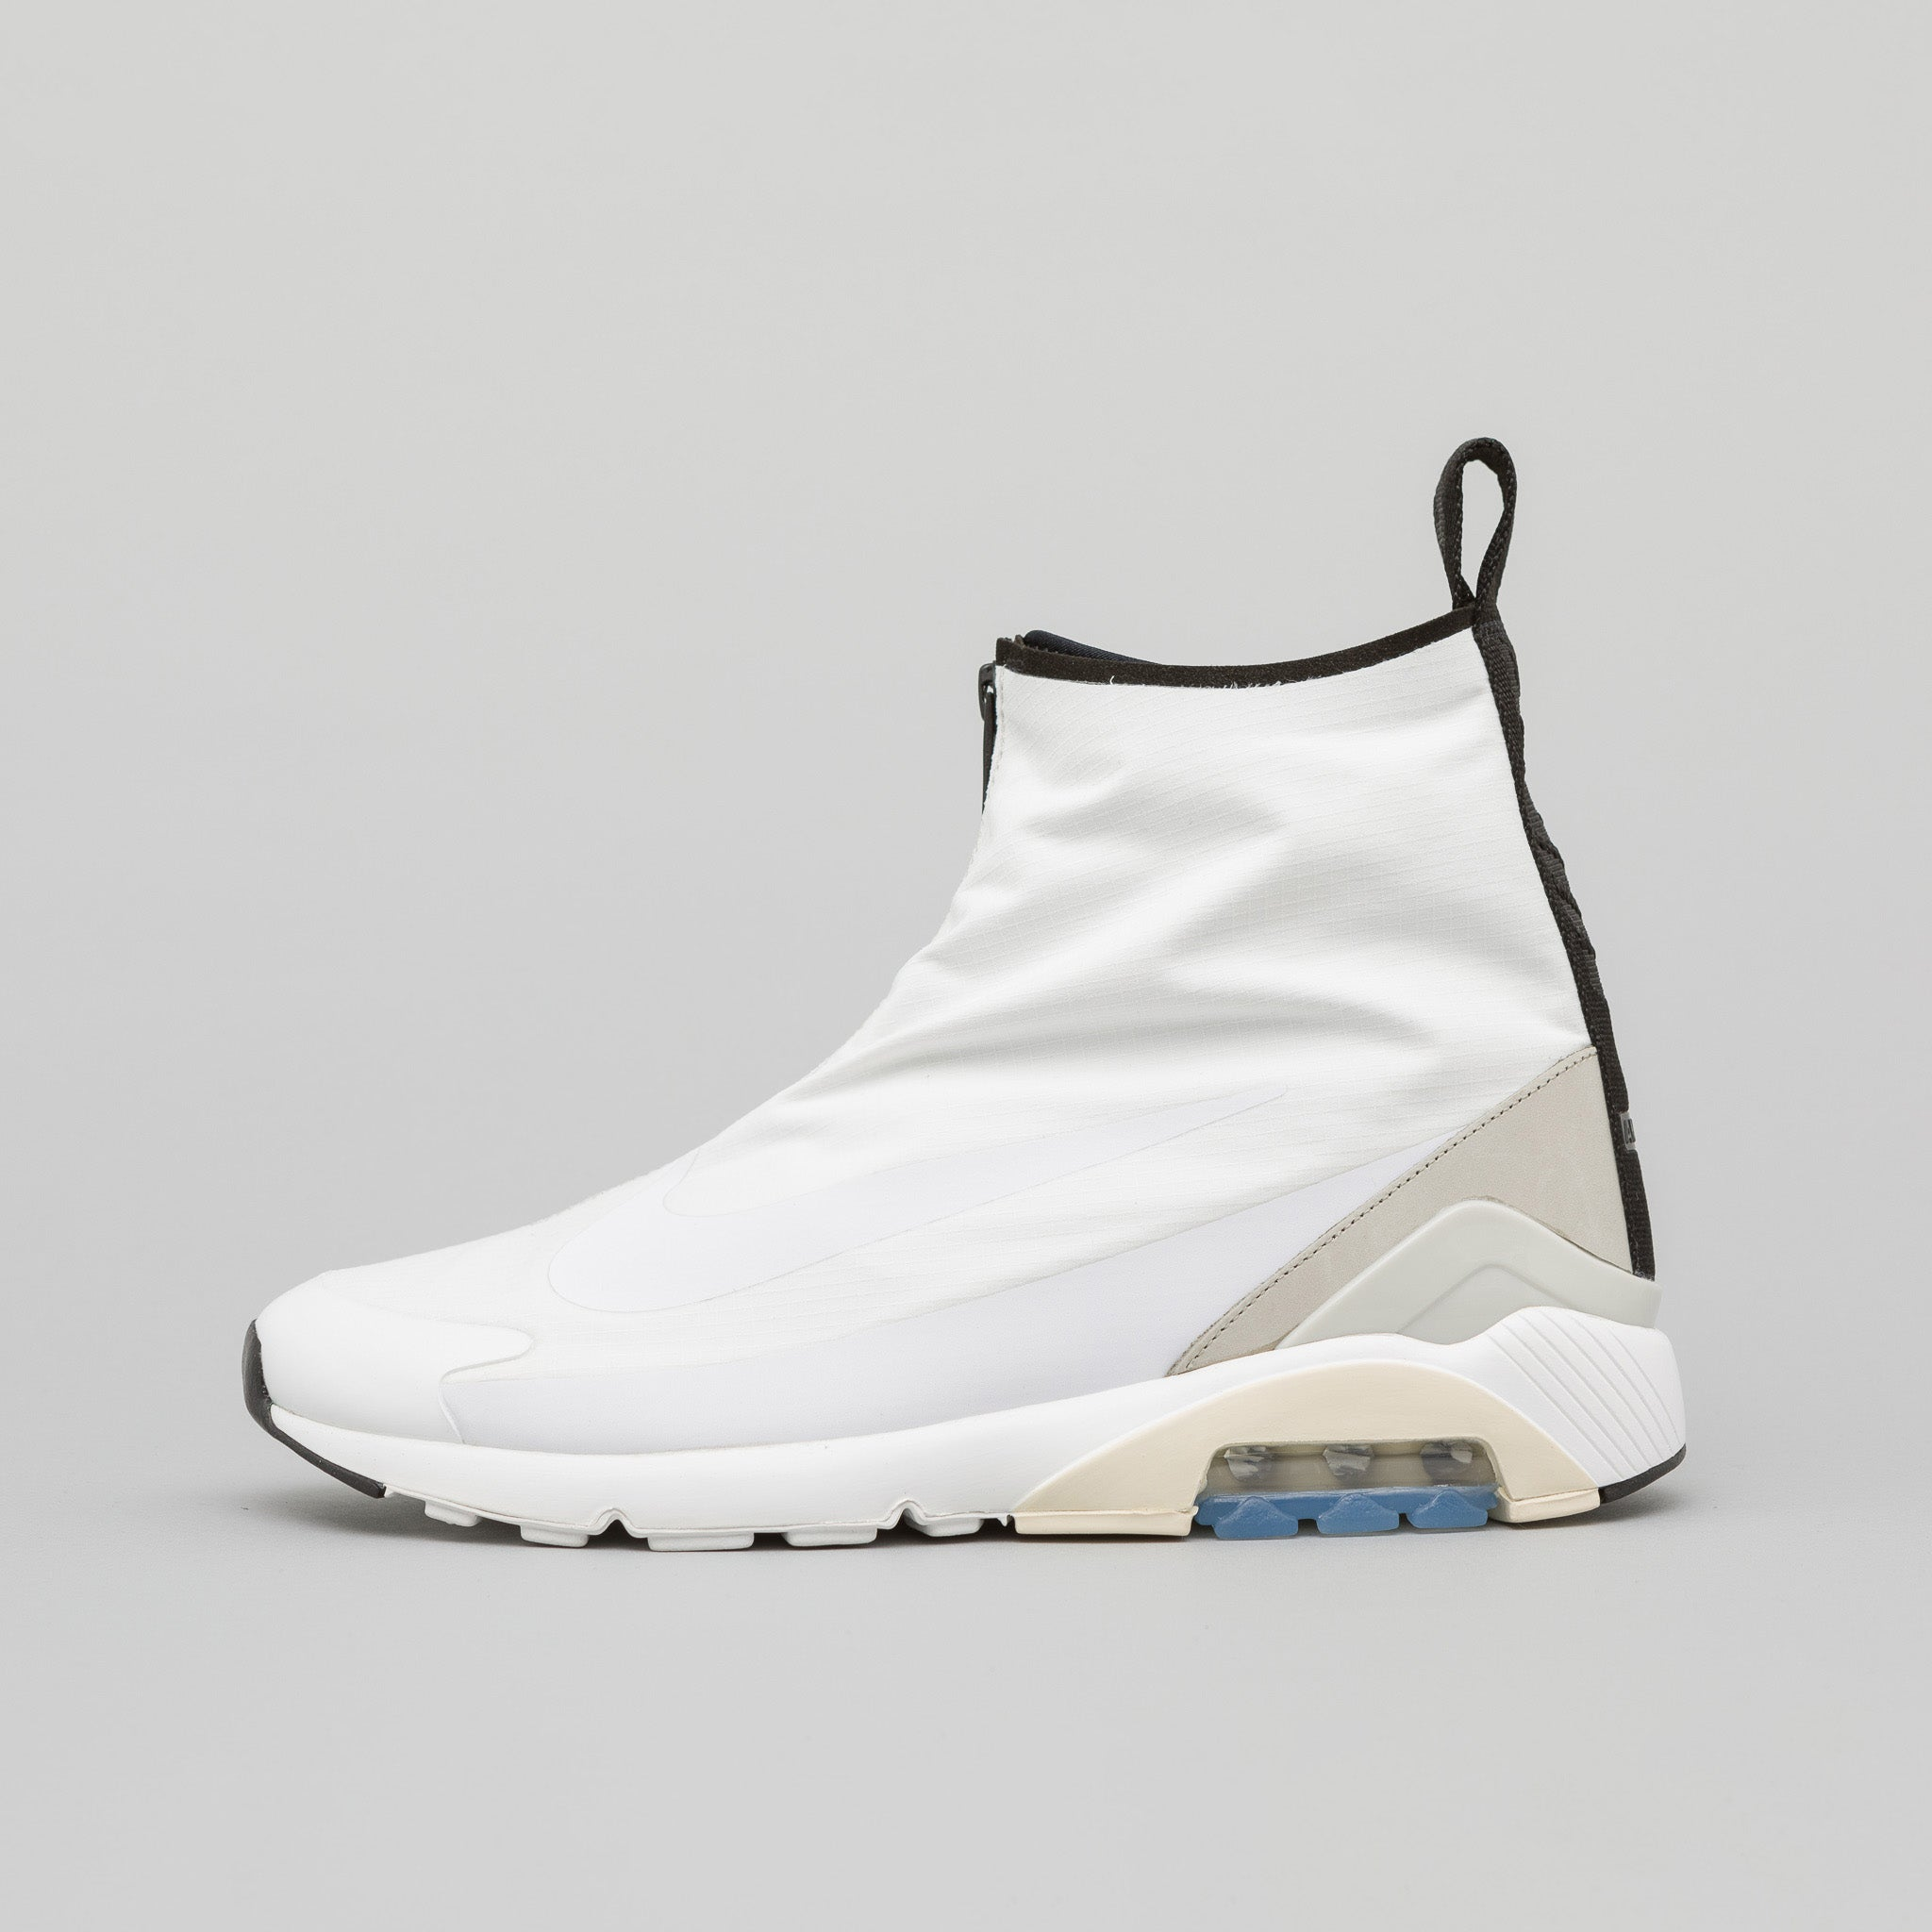 x Ambush Air Max 180 Hi in White